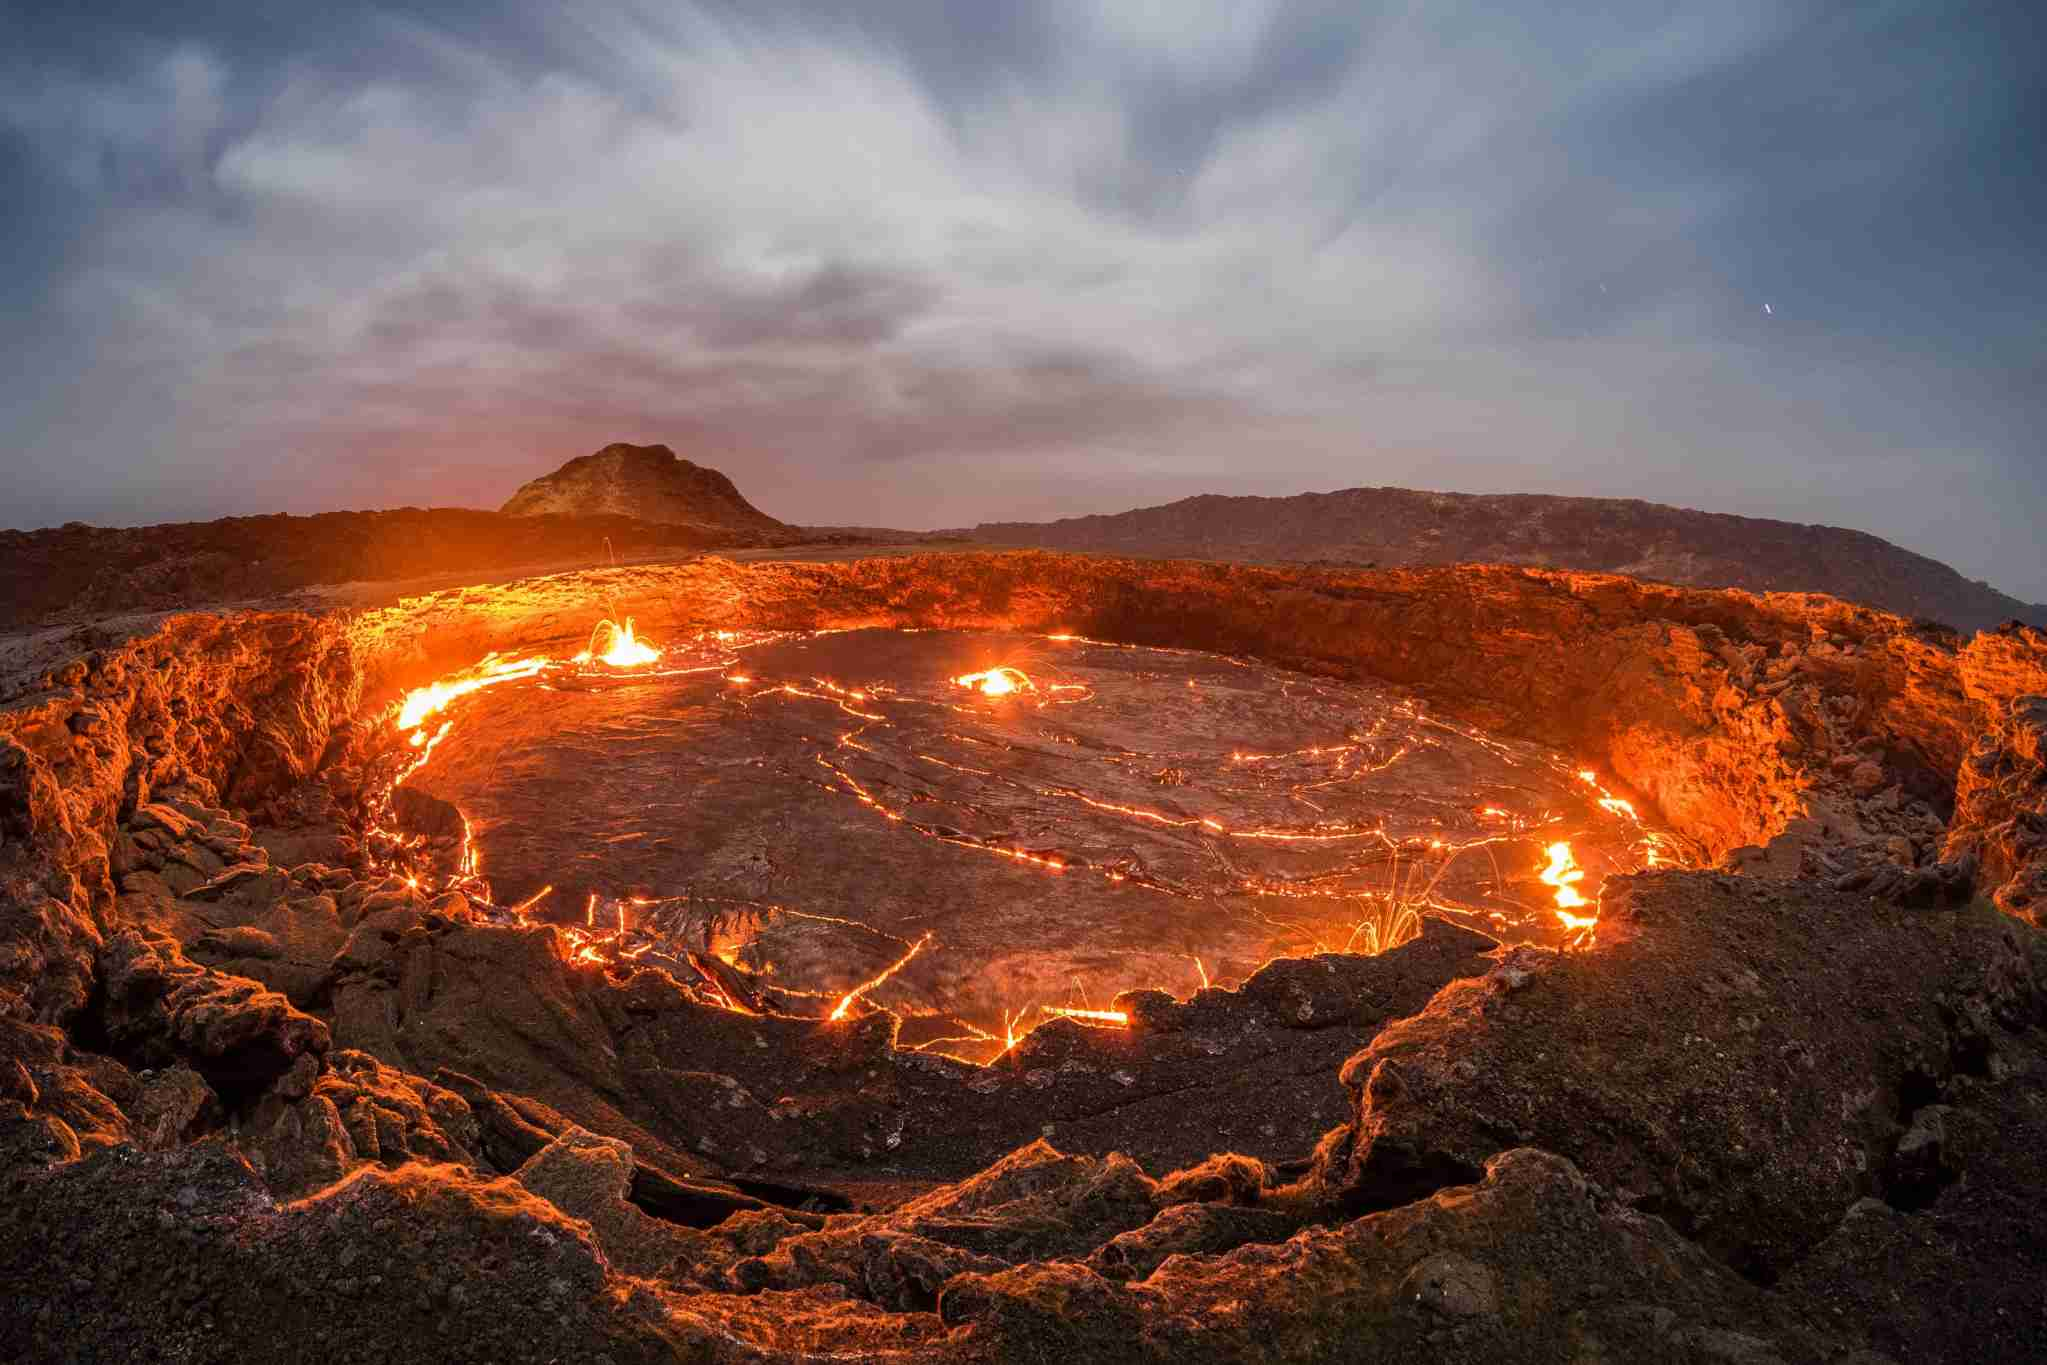 At over 100 years old, Erta Ale is the oldest lava lake in the world. (Photo by Joel Santos / Barcroft Images / Barcroft Media via Getty Images)